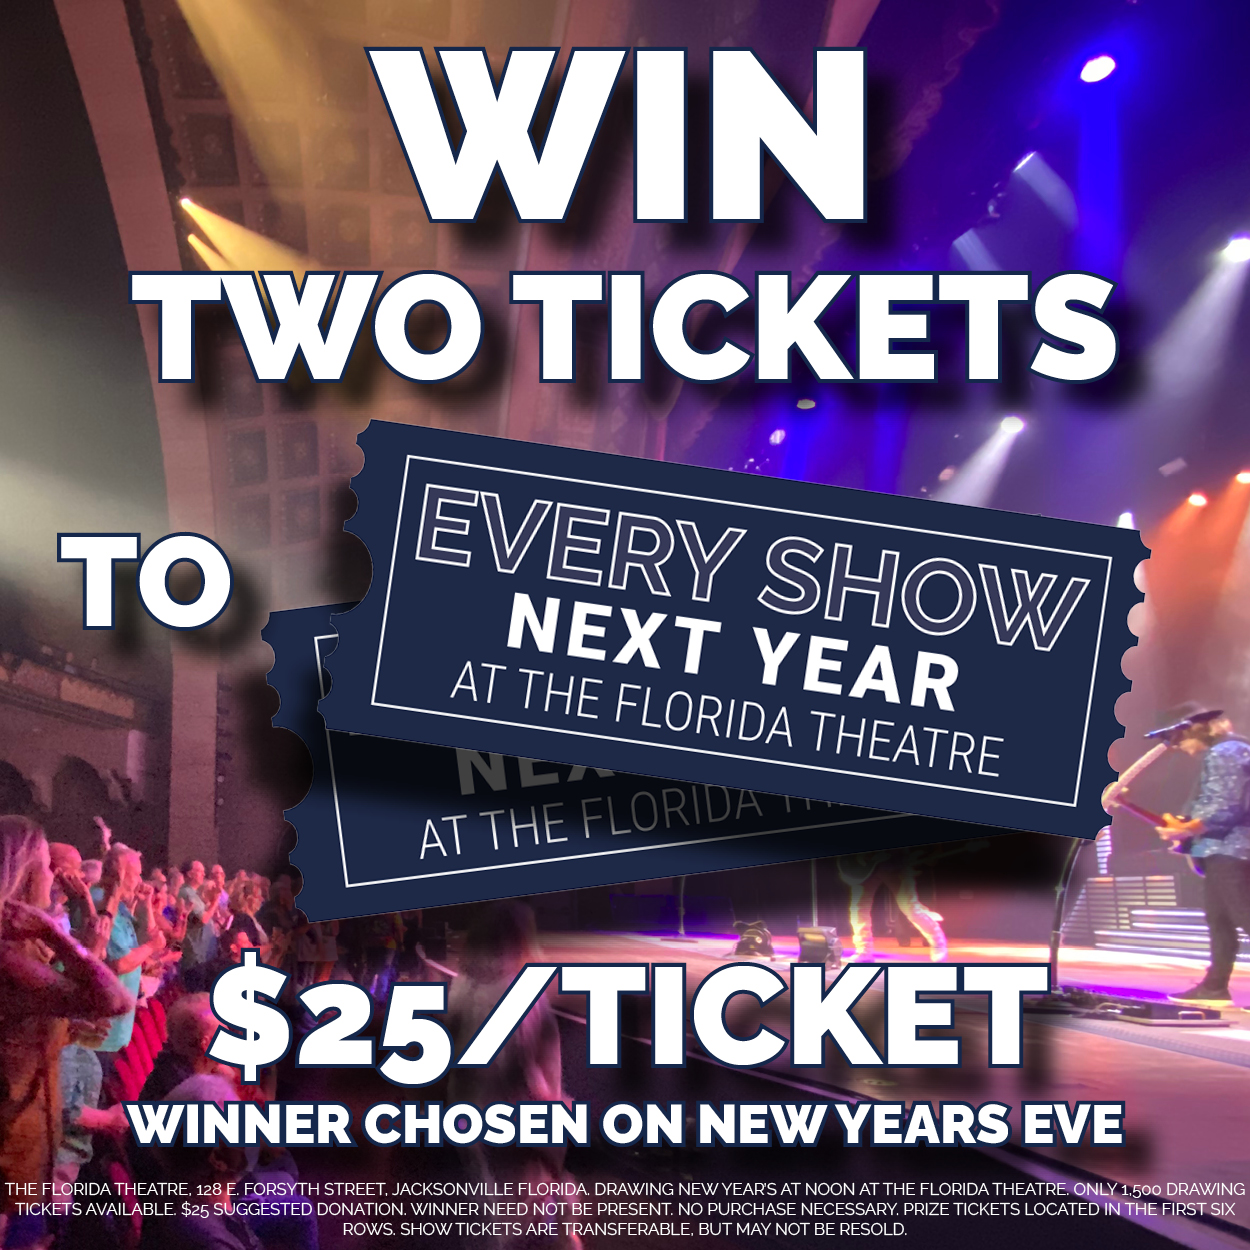 Win 2 Tickets to Every Show Next Year!